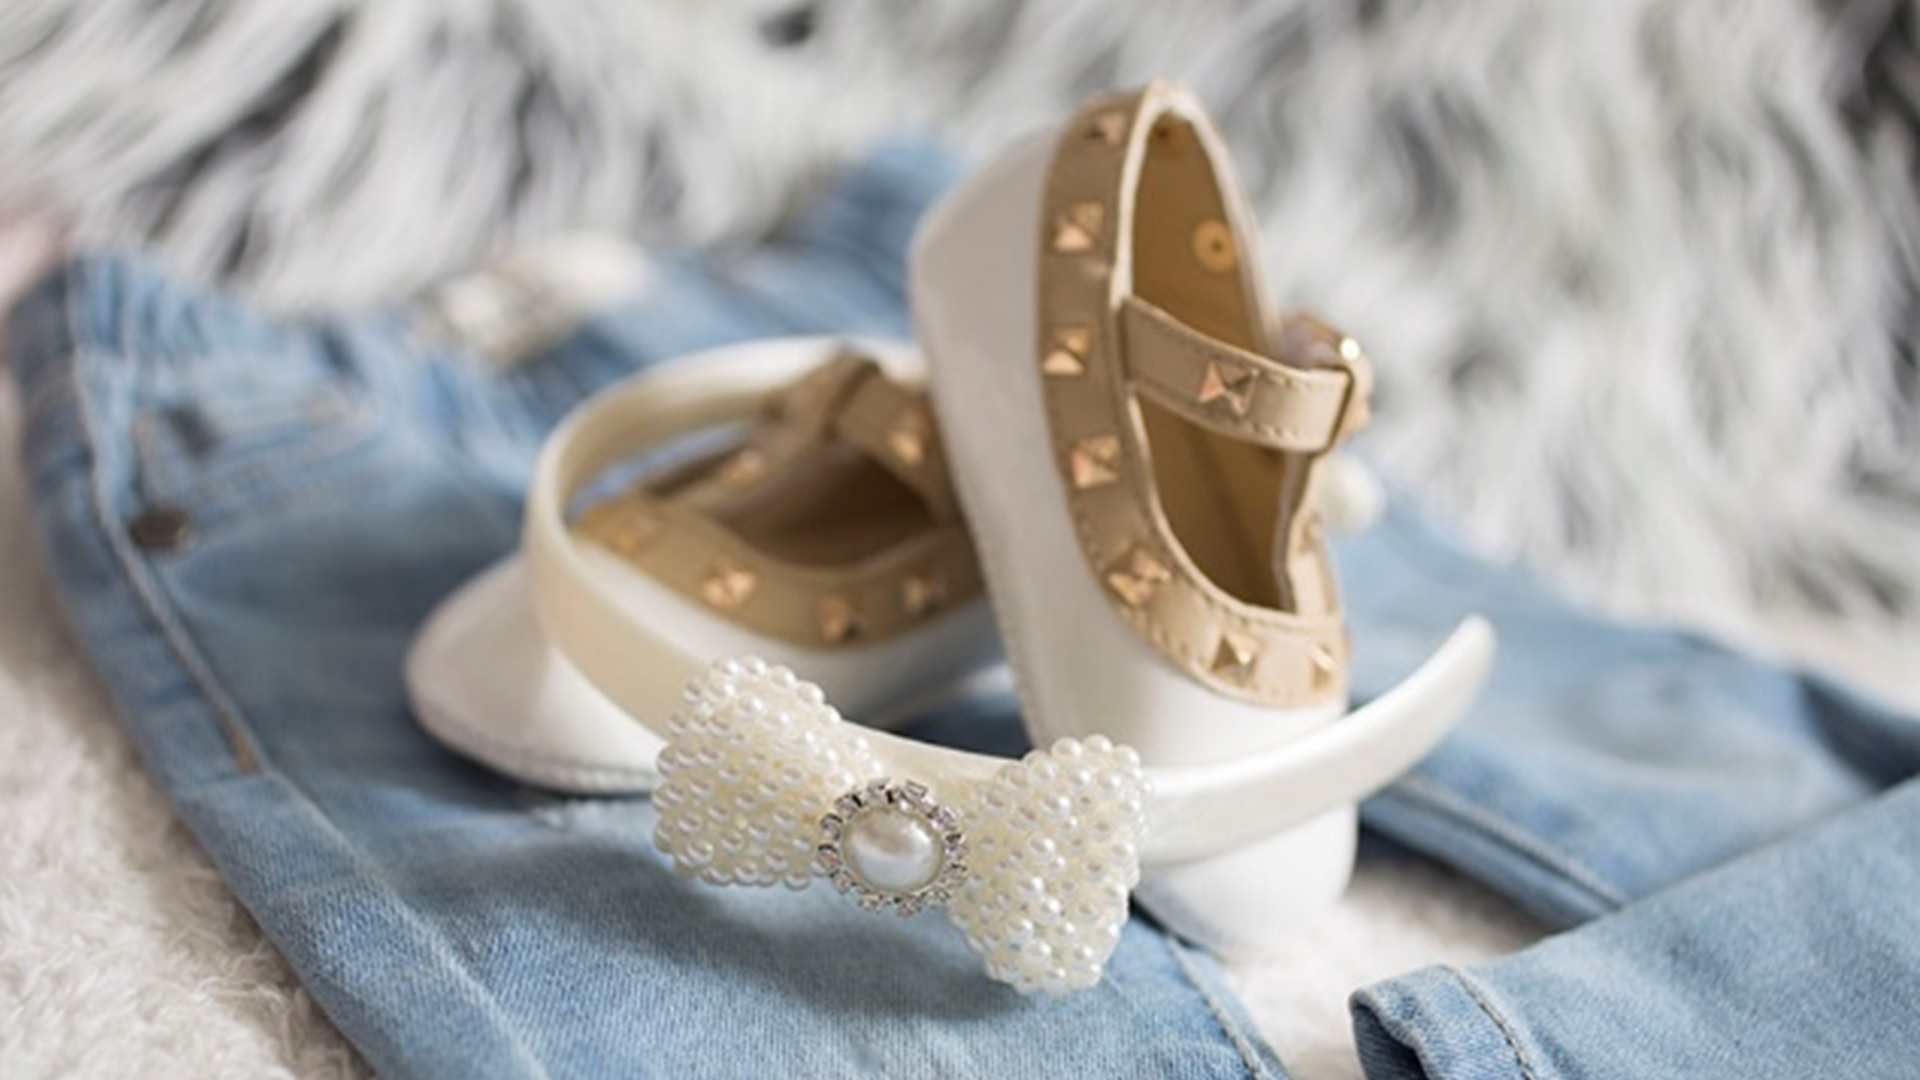 White and gold baby shoes with white beaded Alice band resting on a pair of baby jeans